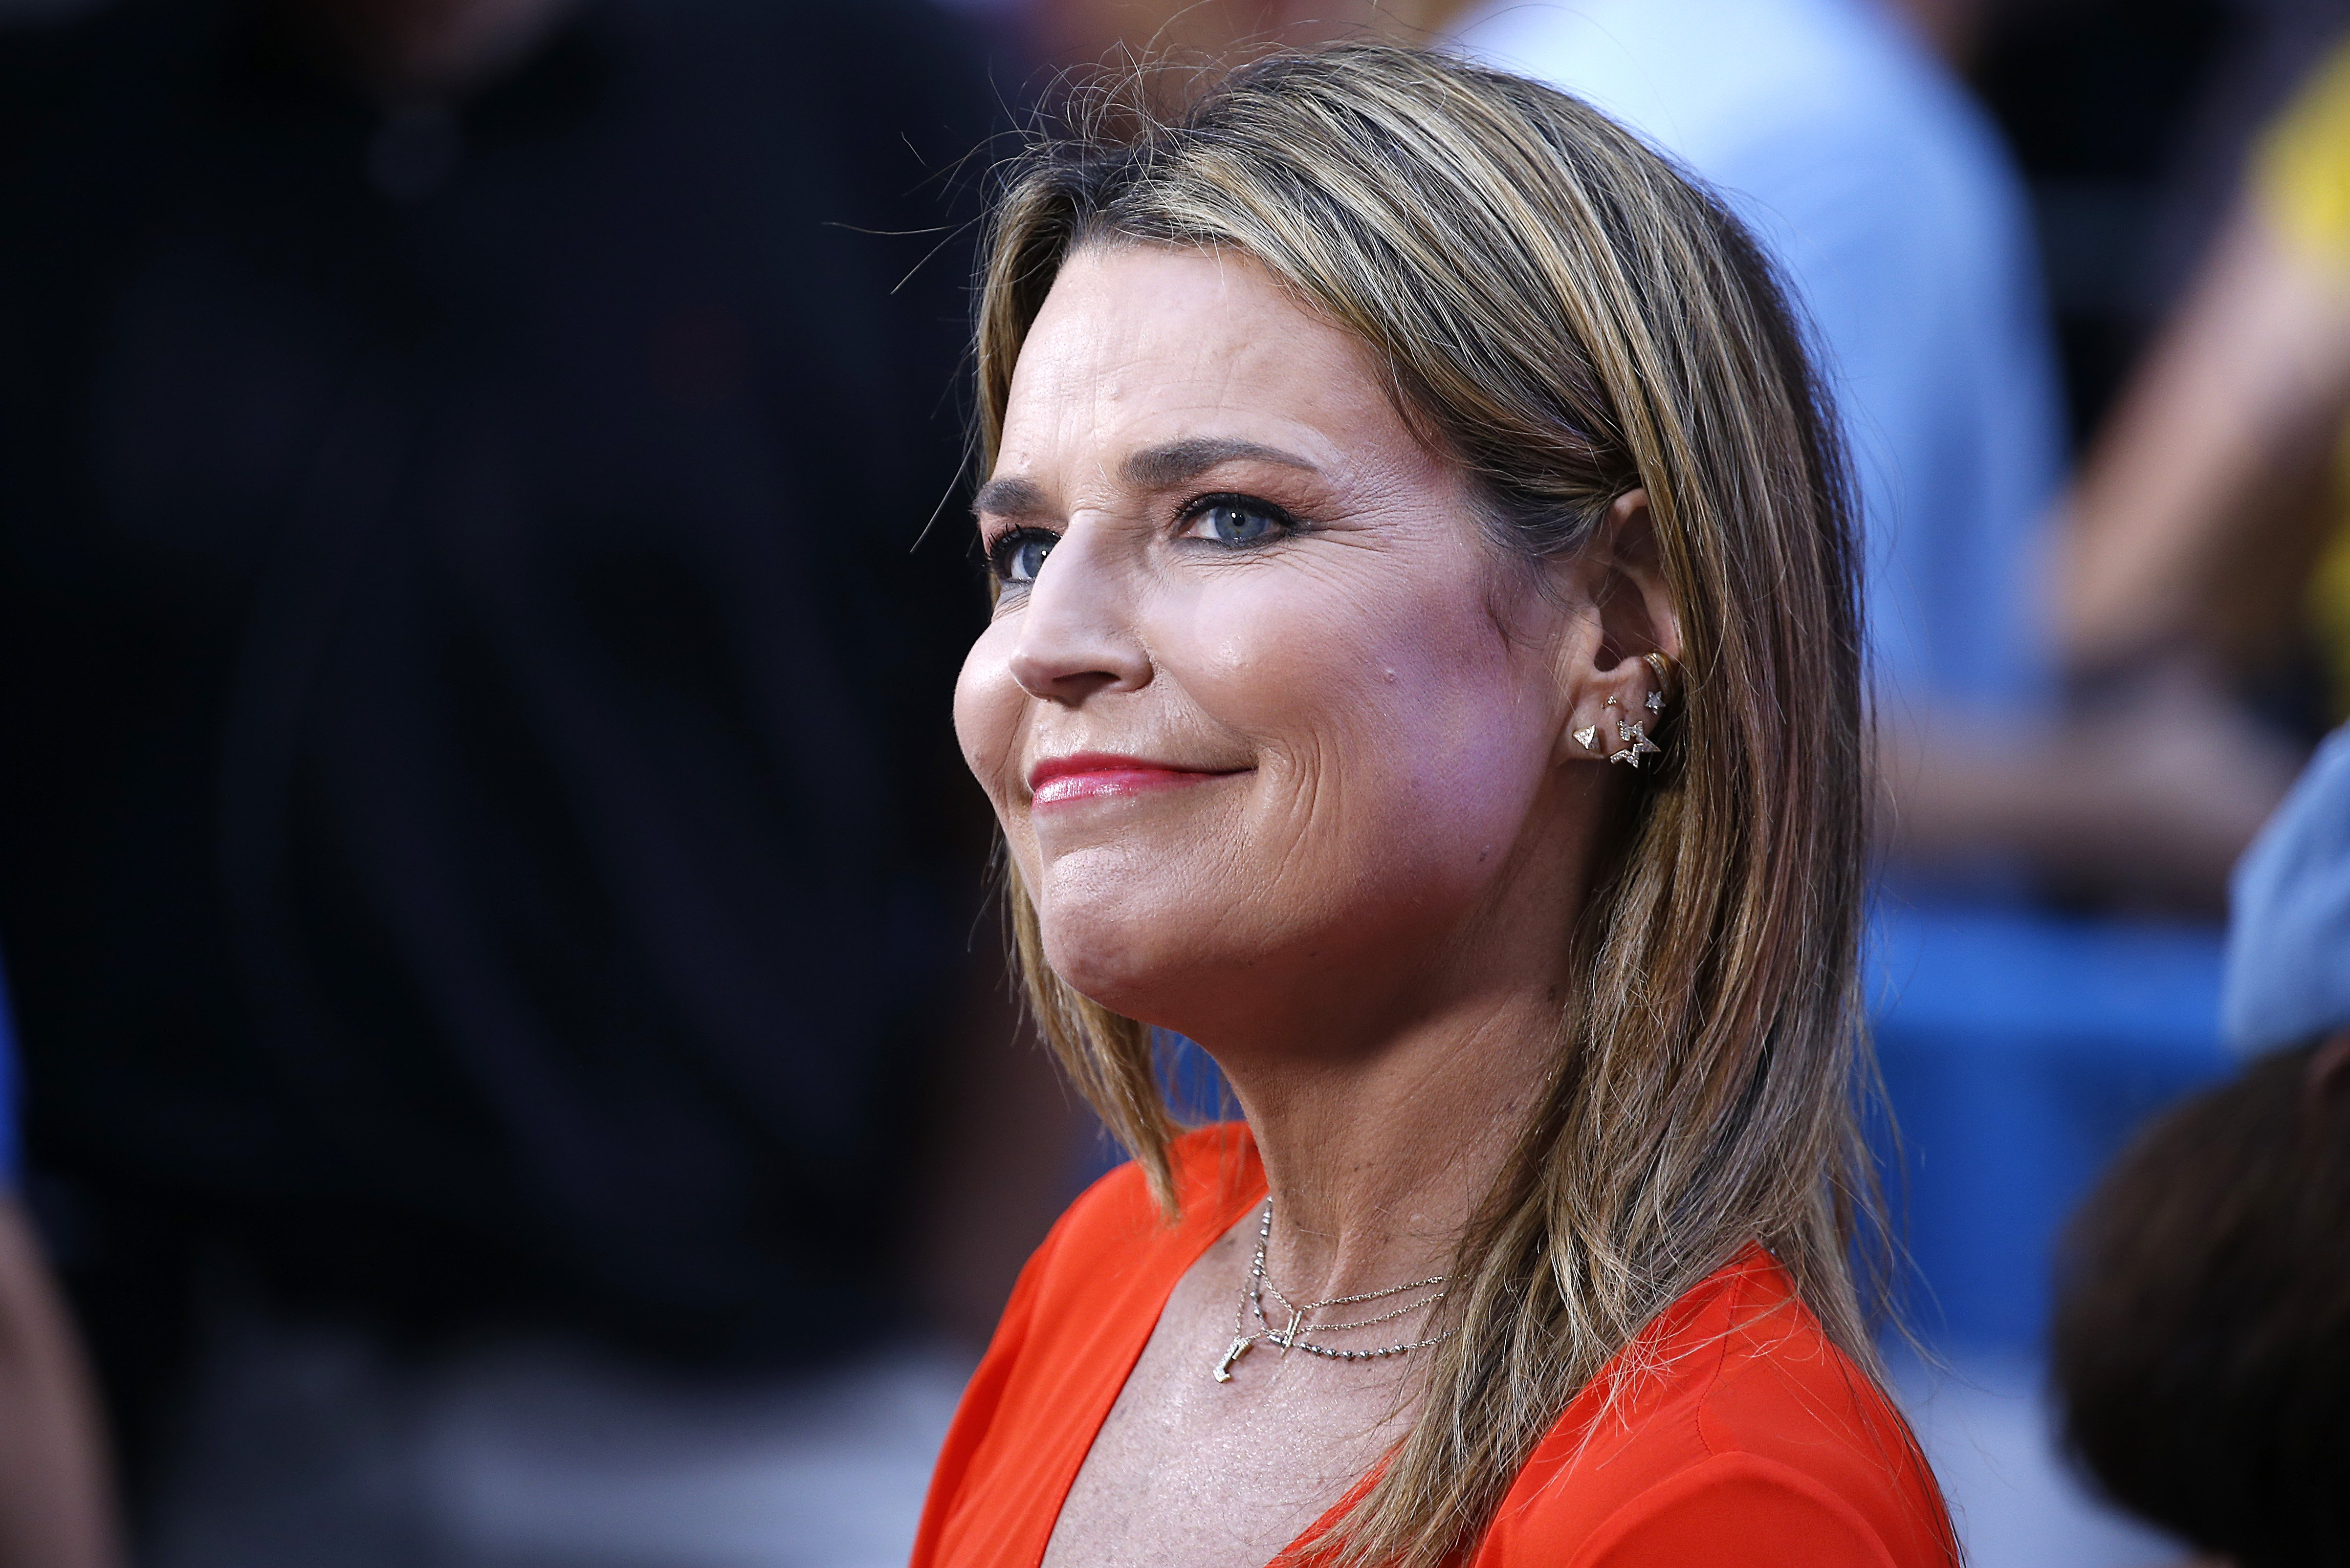 Savannah Guthrie From Today Talks Becoming A Mom In Her 40s